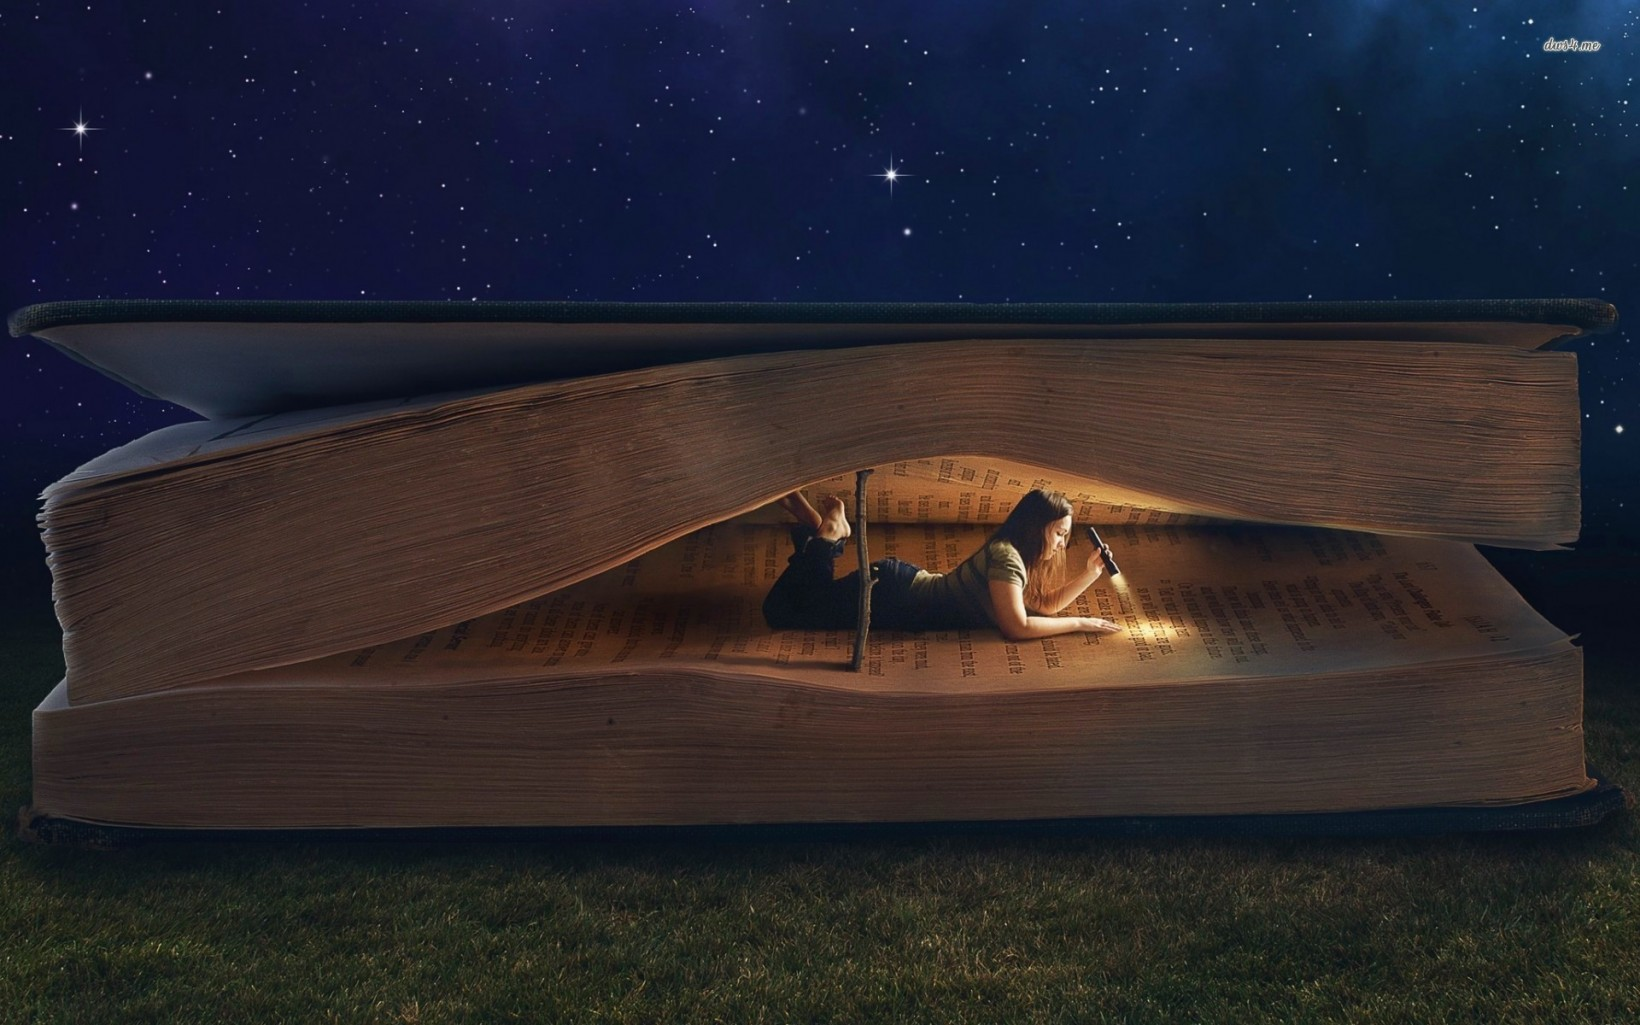 16146-girl-reading-a-giant-book-1920x1200-digital-art-wallpaper